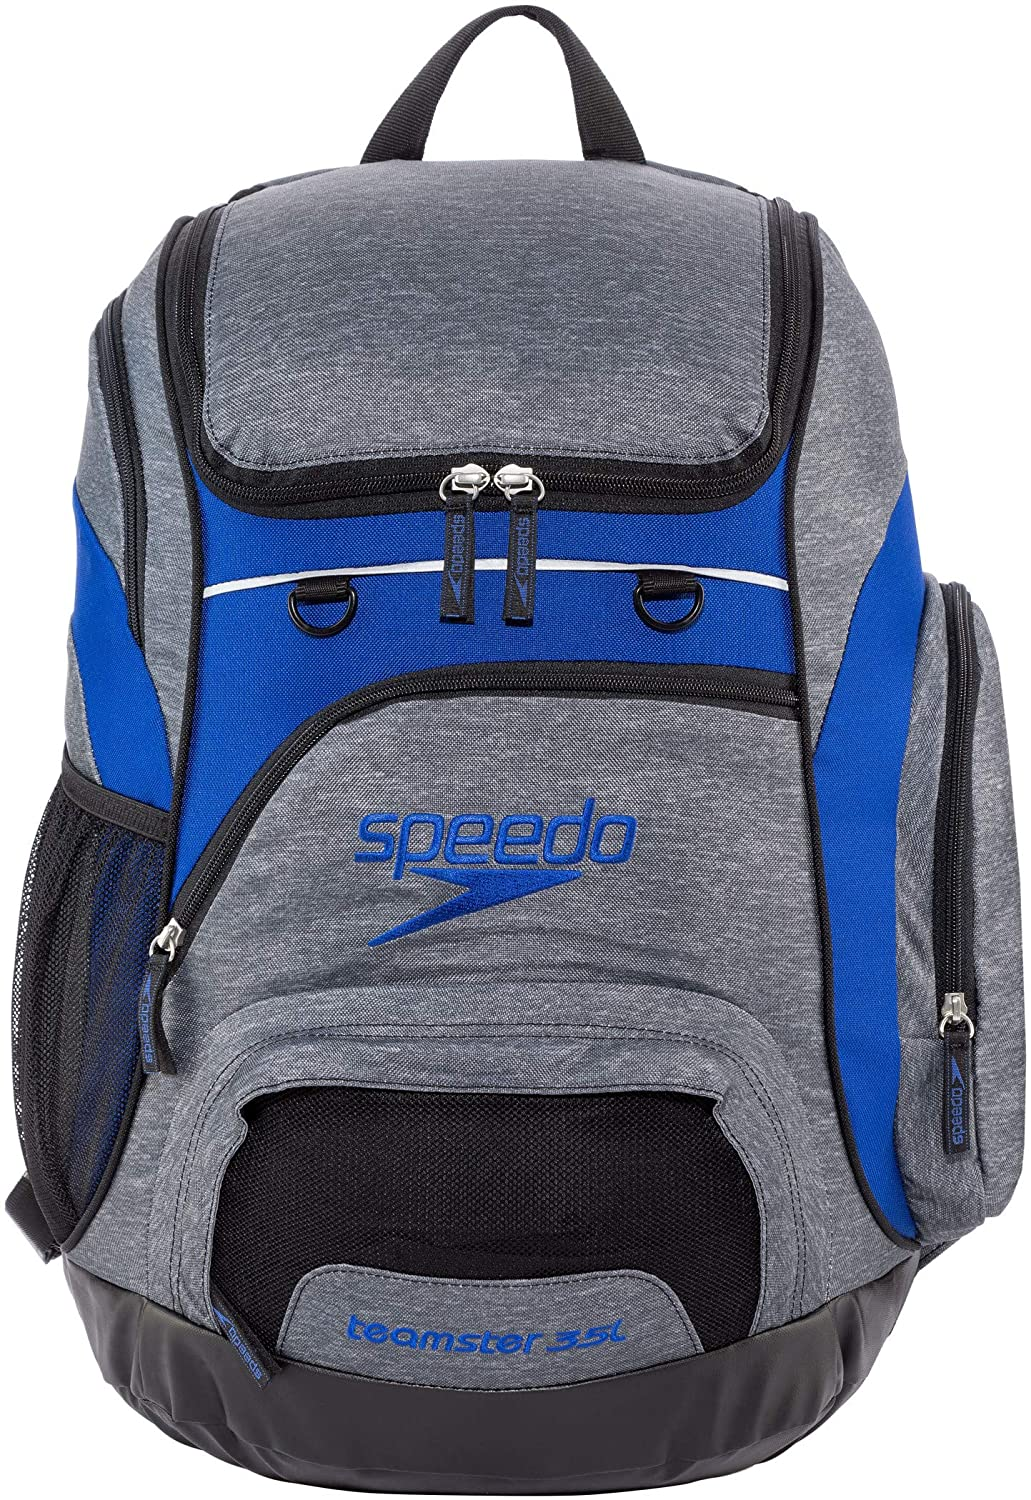 Heather Grey//Navy Speedo Unisexs Teamster Backpack One Size